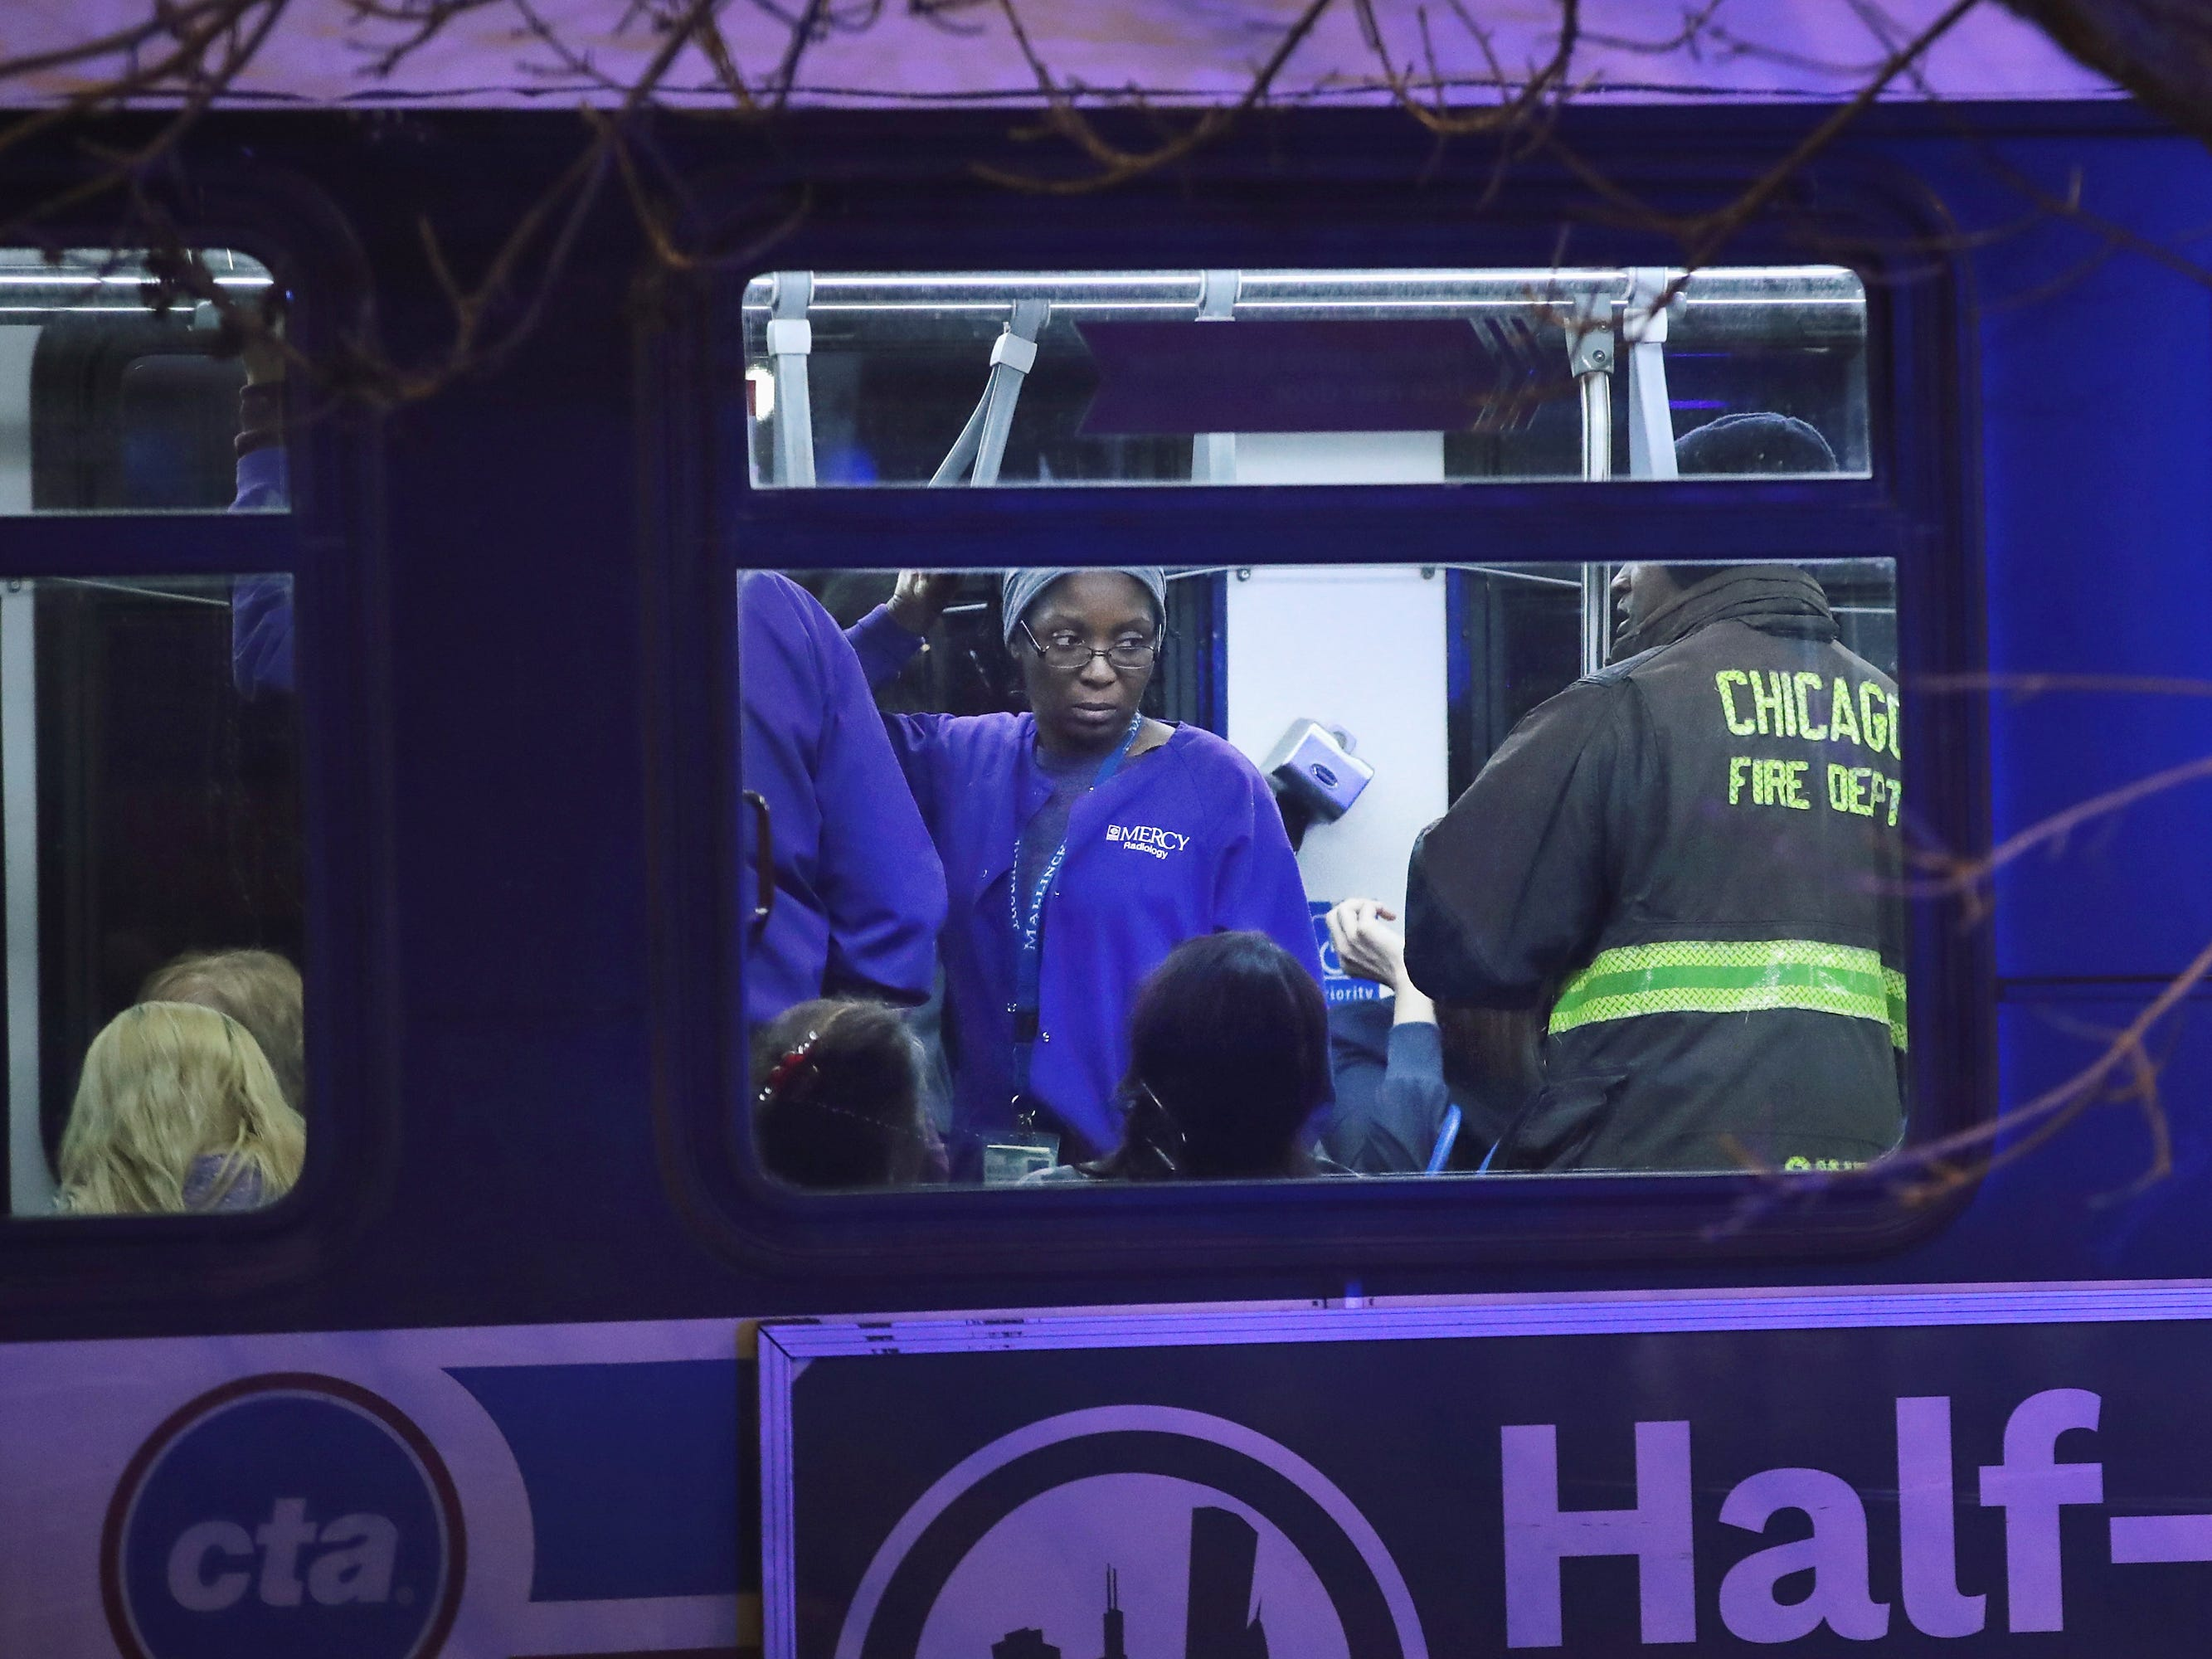 People believed to be Mercy Hospital workers wait on city buses outside after a gunman opened fire at Mercy Hospital on Nov. 19, 2018 in Chicago.